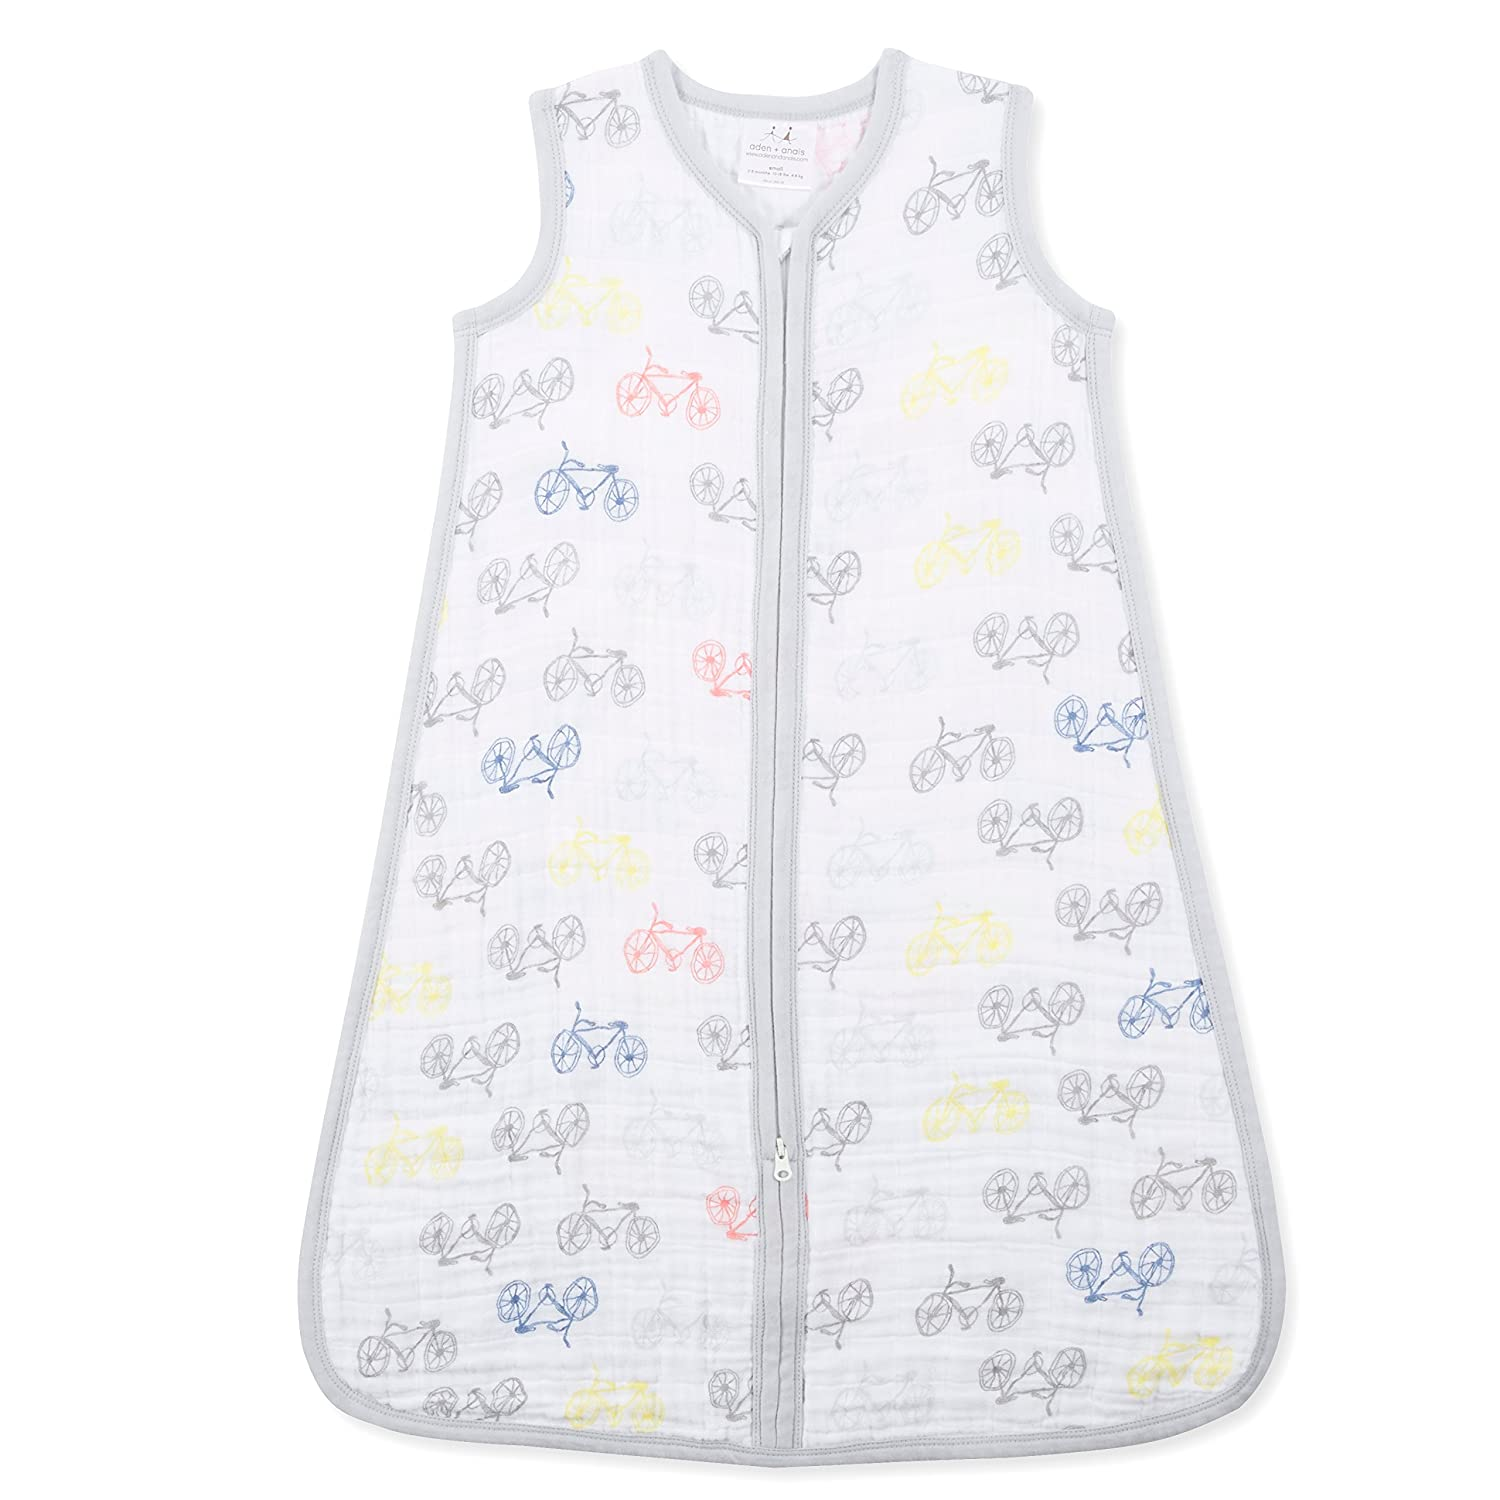 aden + anais sleeping bag, leader of the pack- S 8142F